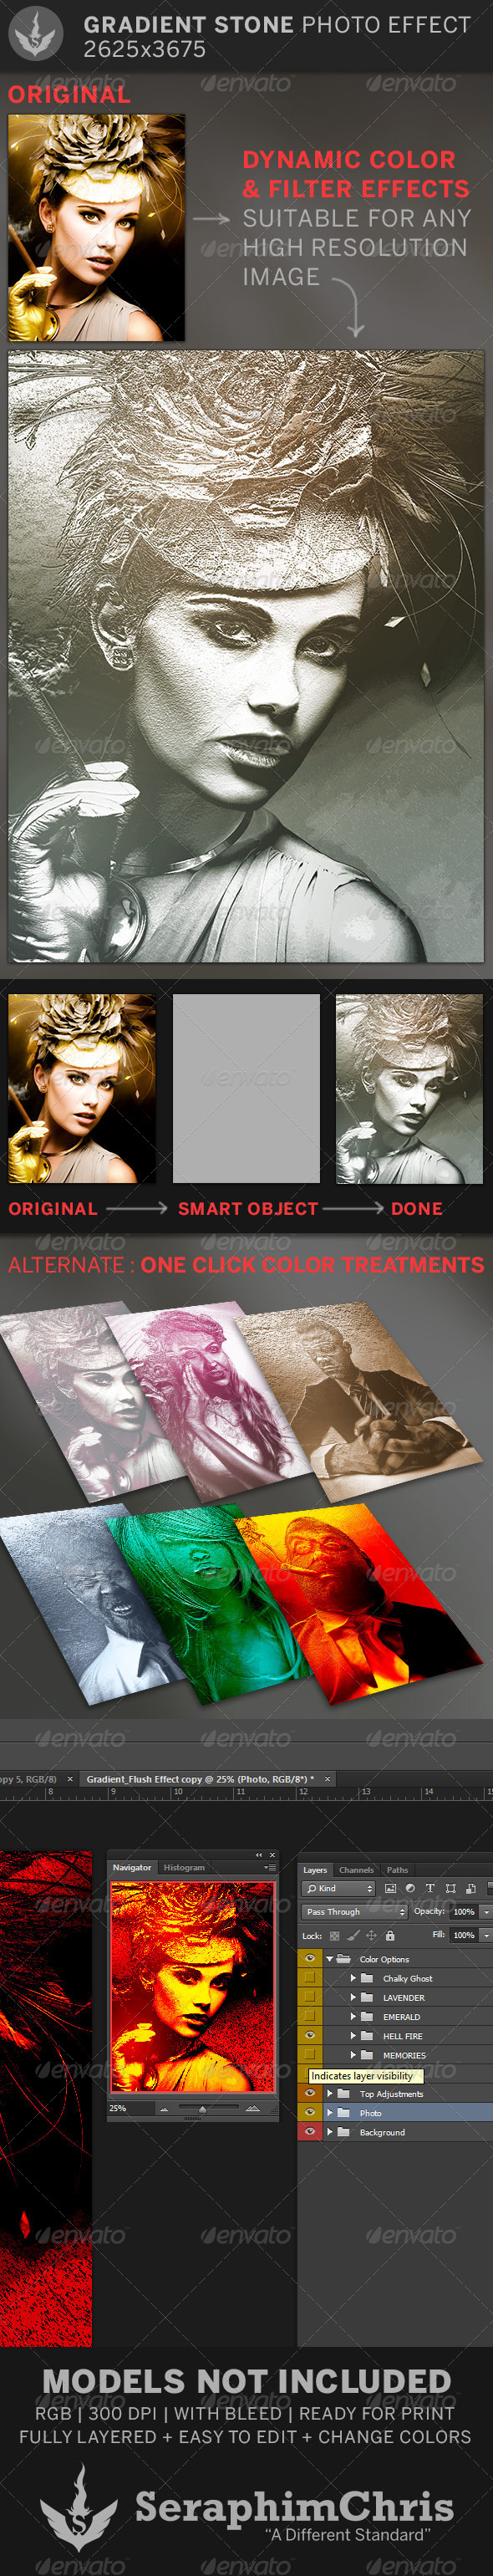 Gradient Stone Photo Effect Template - Artistic Photo Templates